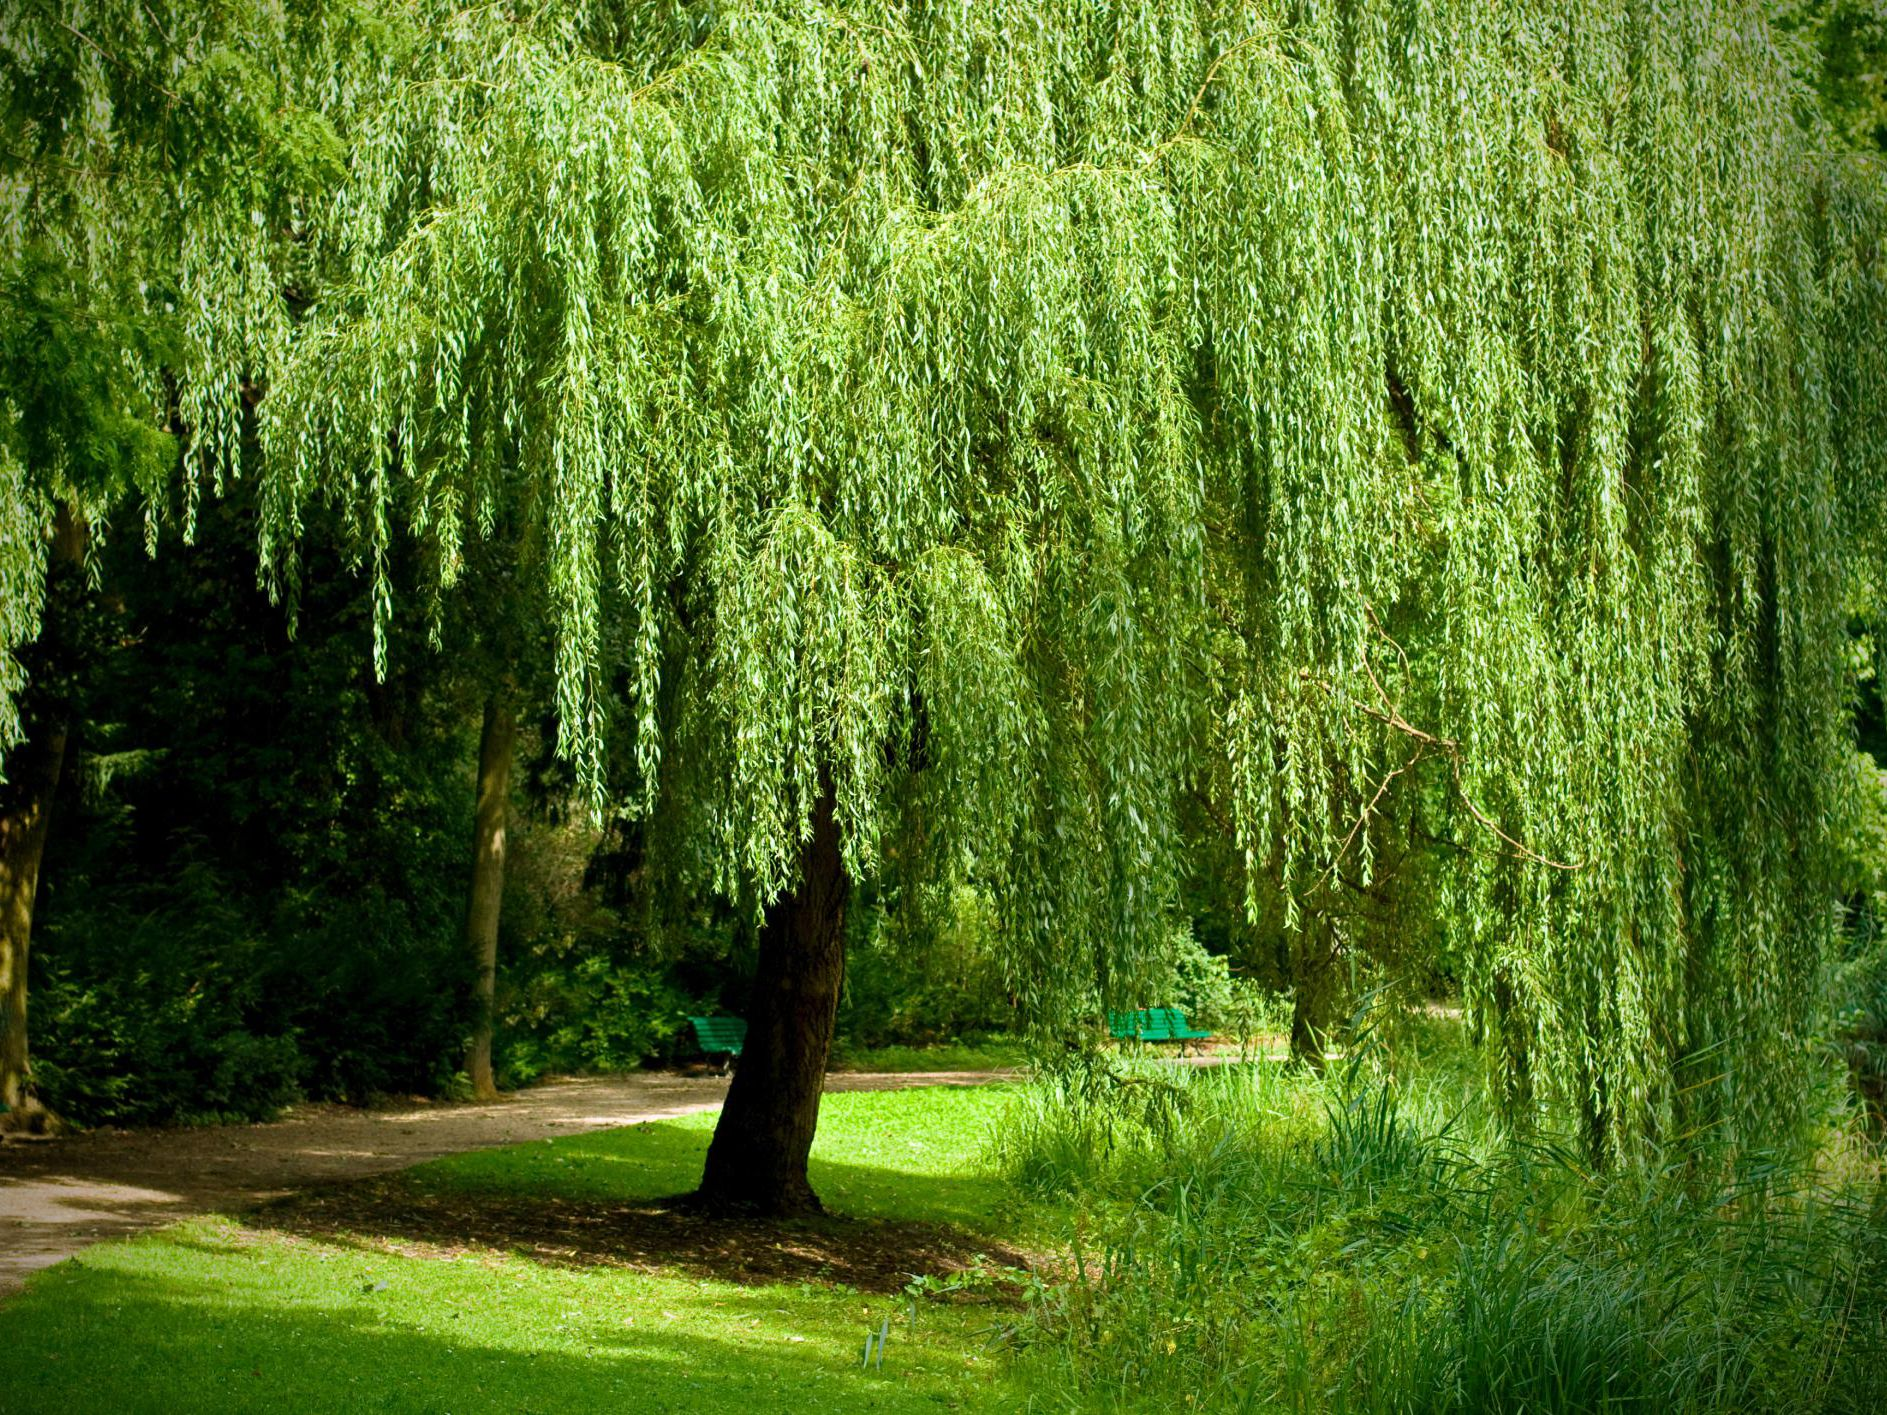 How to Grow and Care for a Weeping Willow Tree